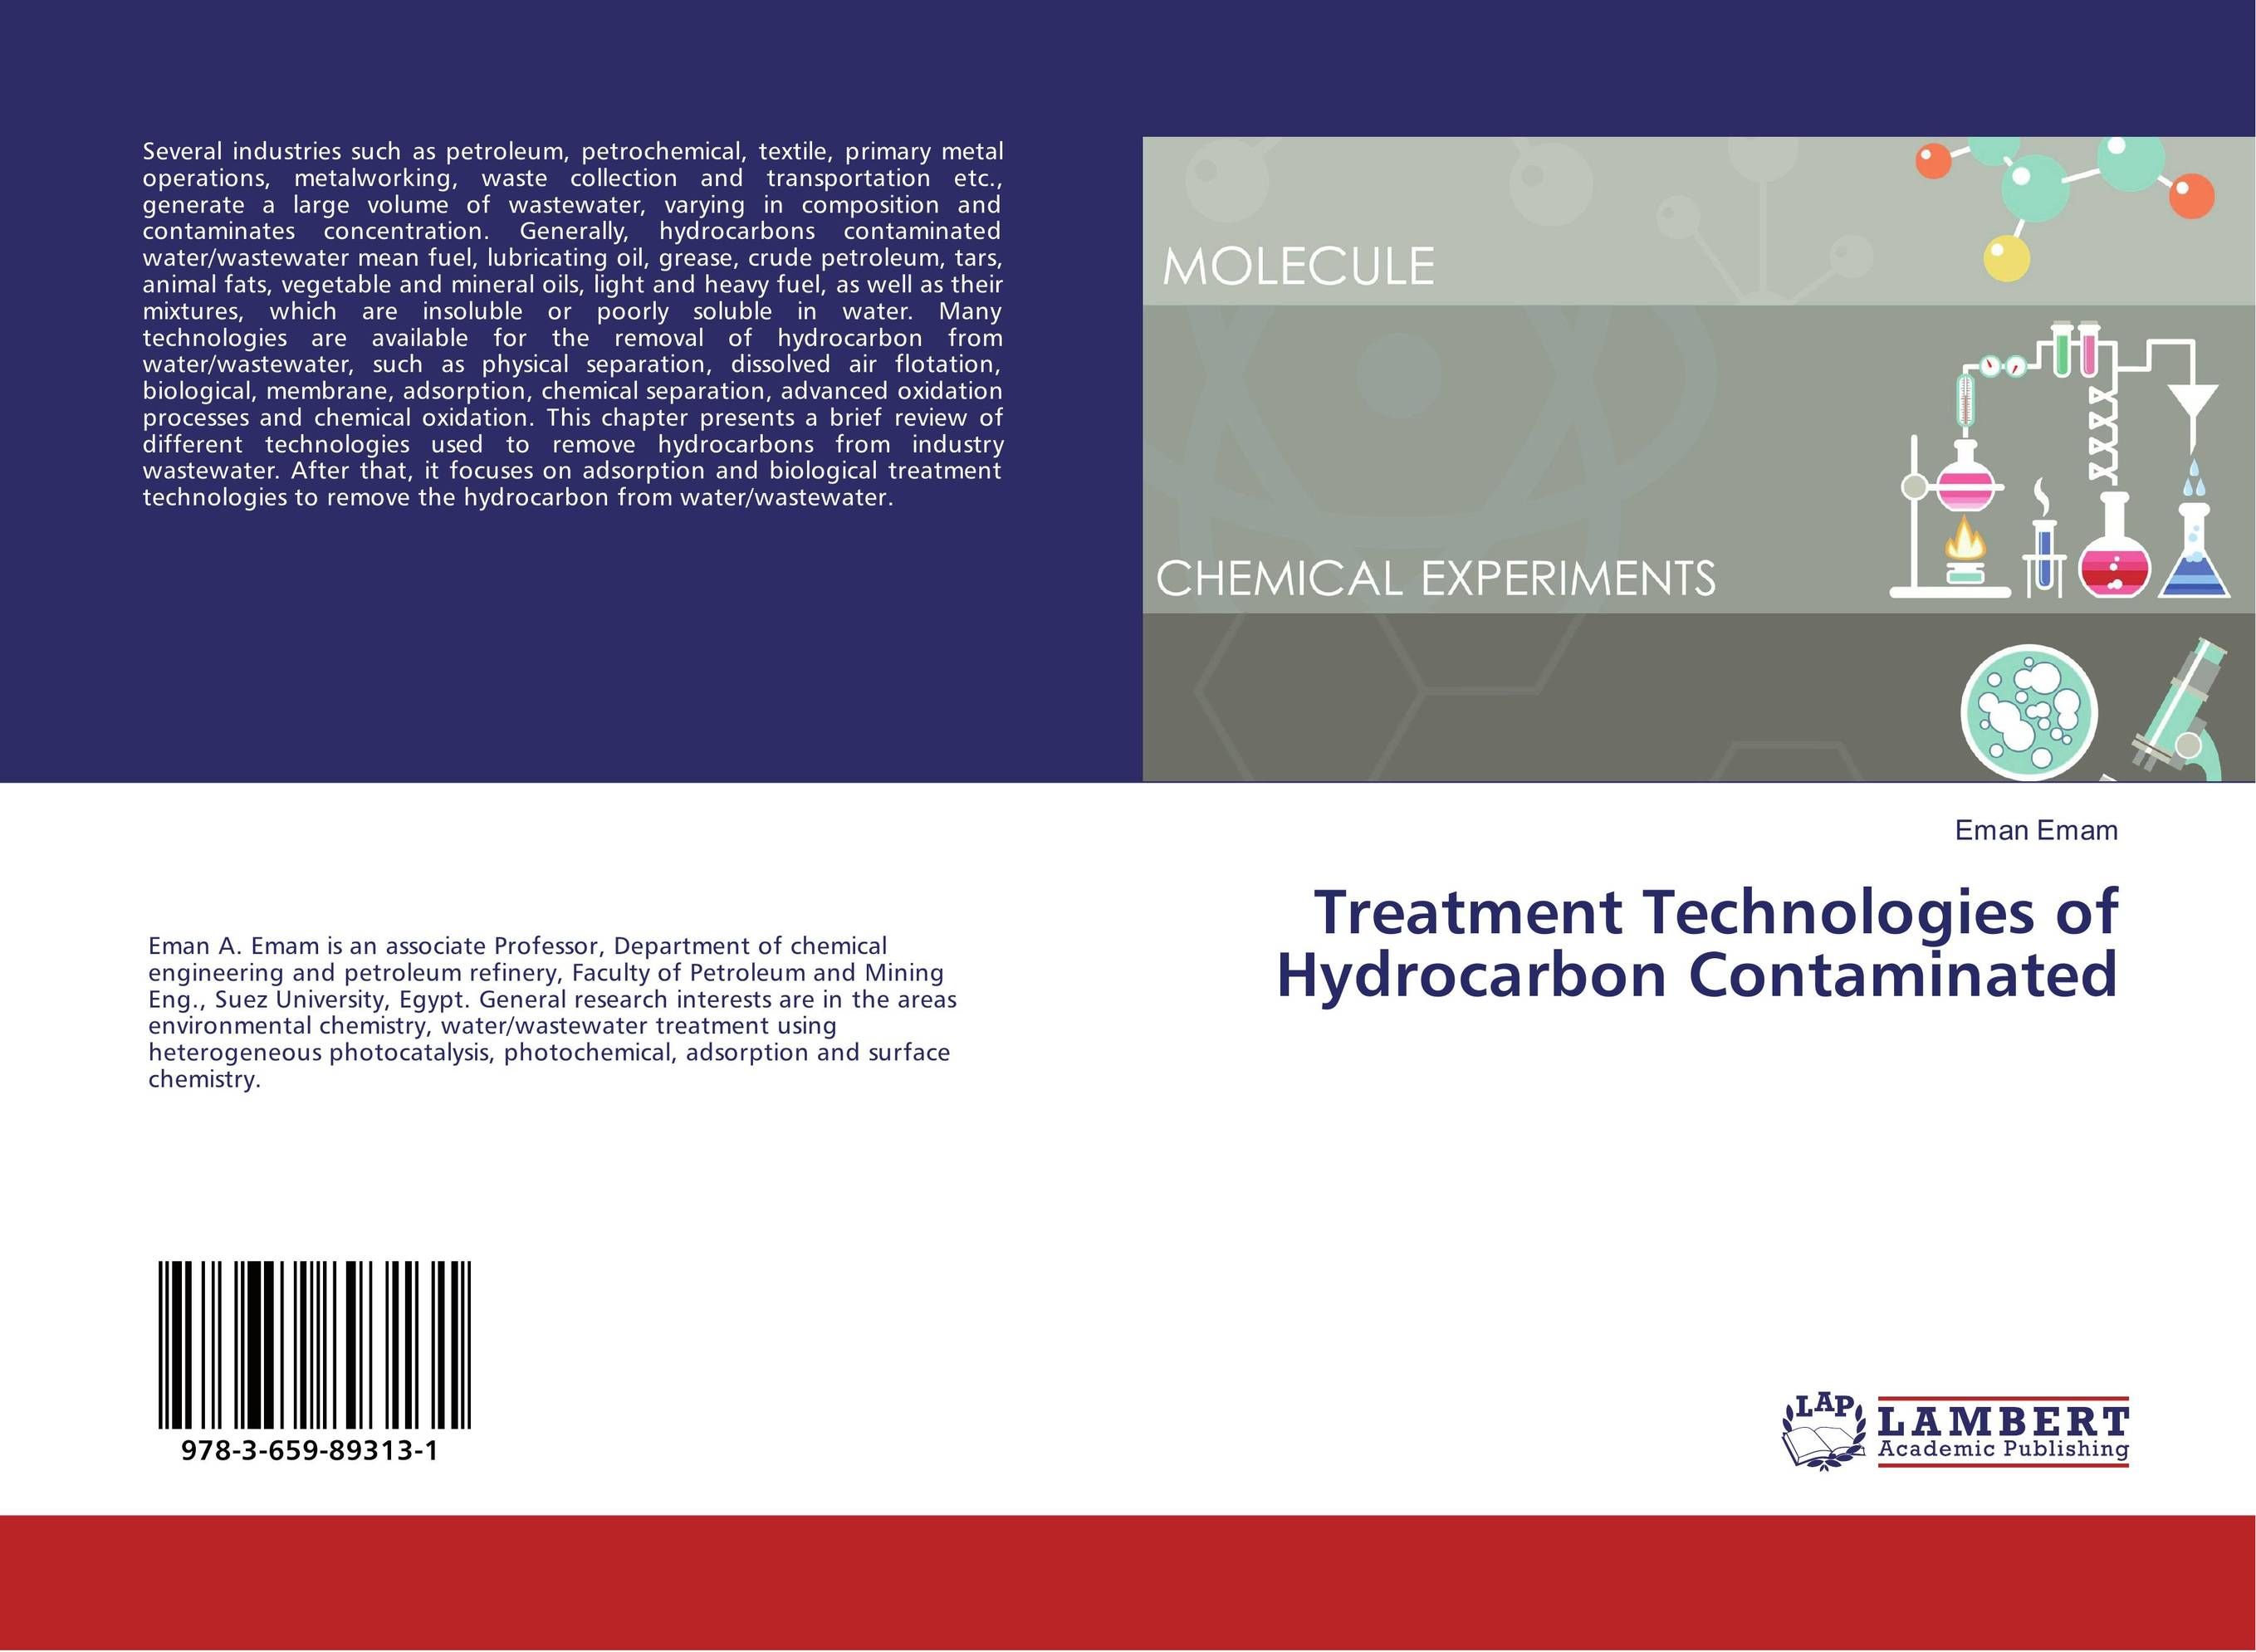 Treatment Technologies of Hydrocarbon Contaminated analysis of pharmaceuticals in wastewater and their photodegradation